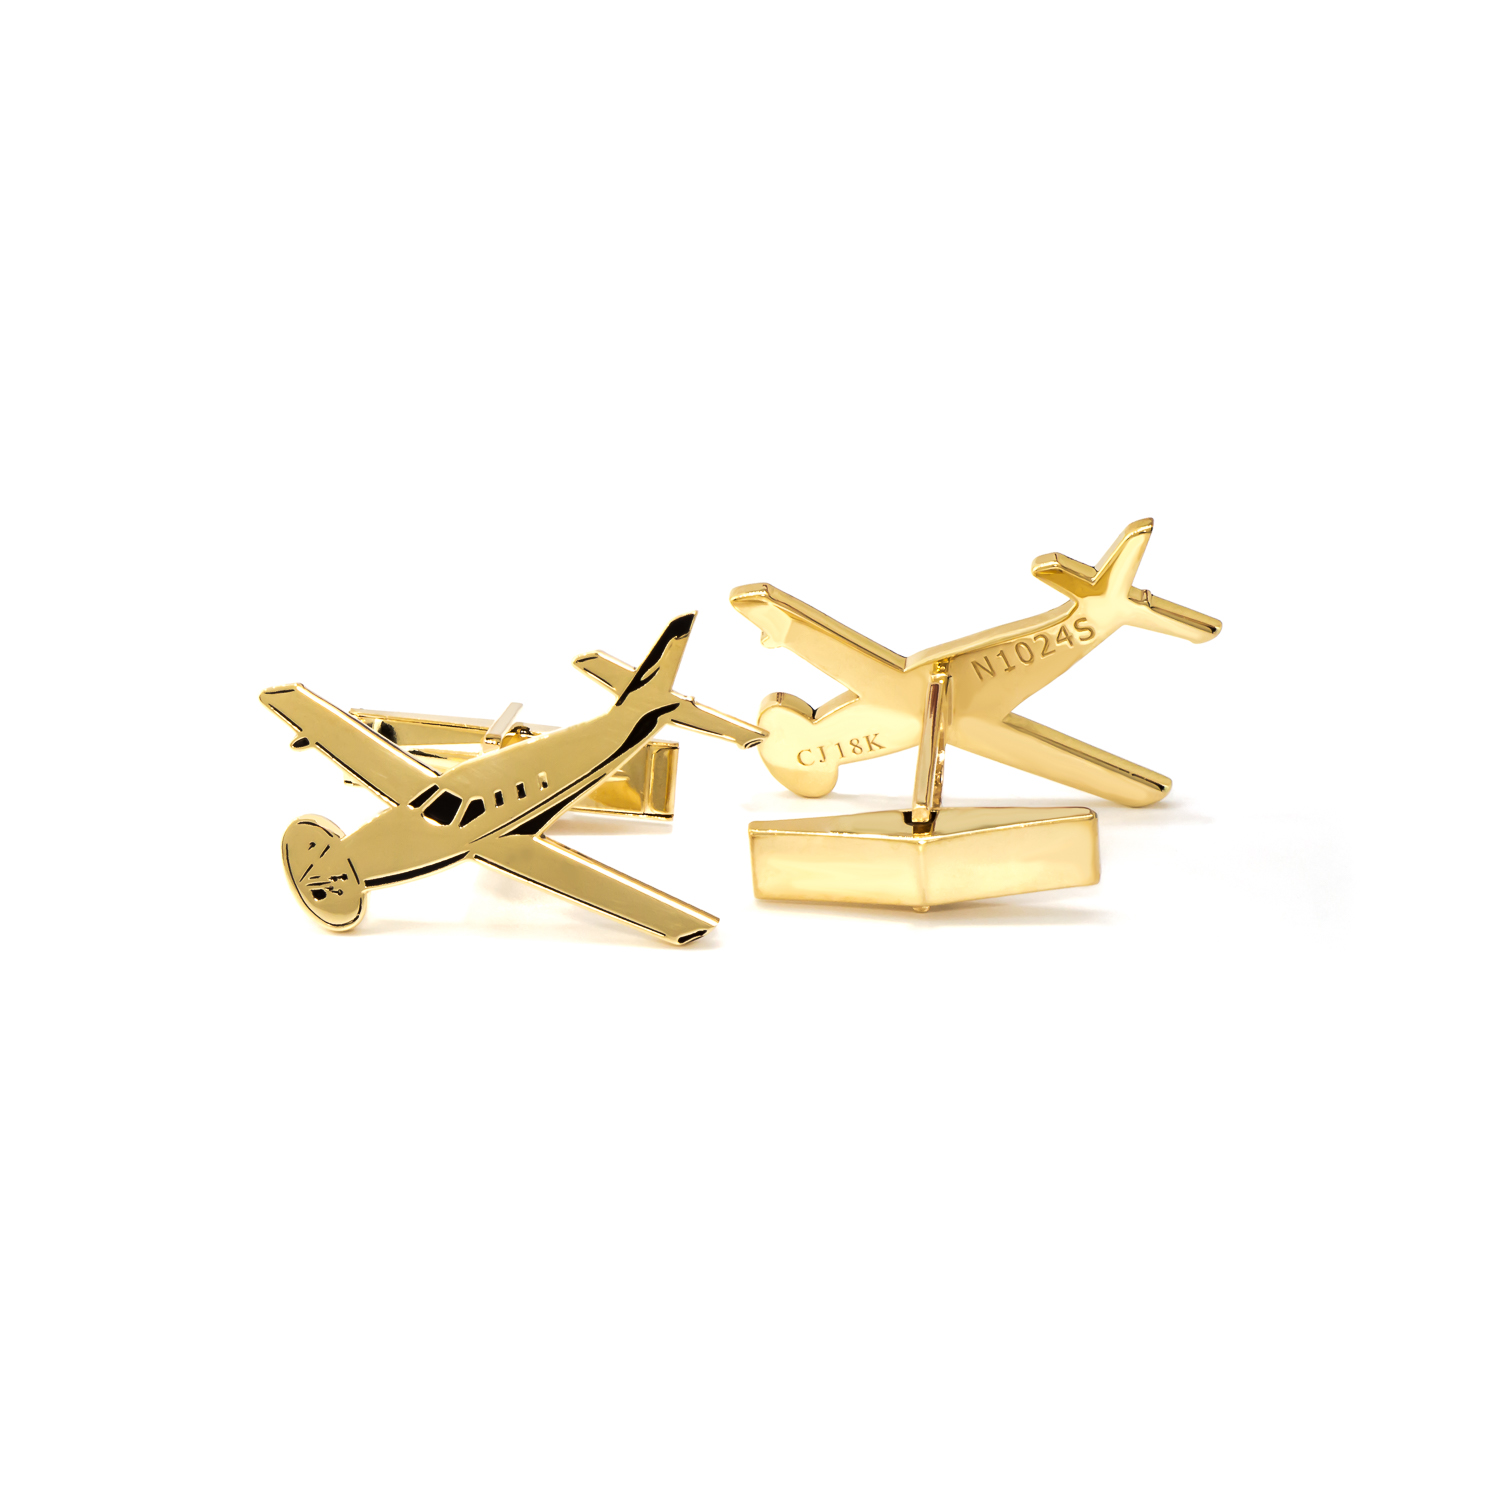 Jenny airplane cufflinks (1 of 1)-2.jpg